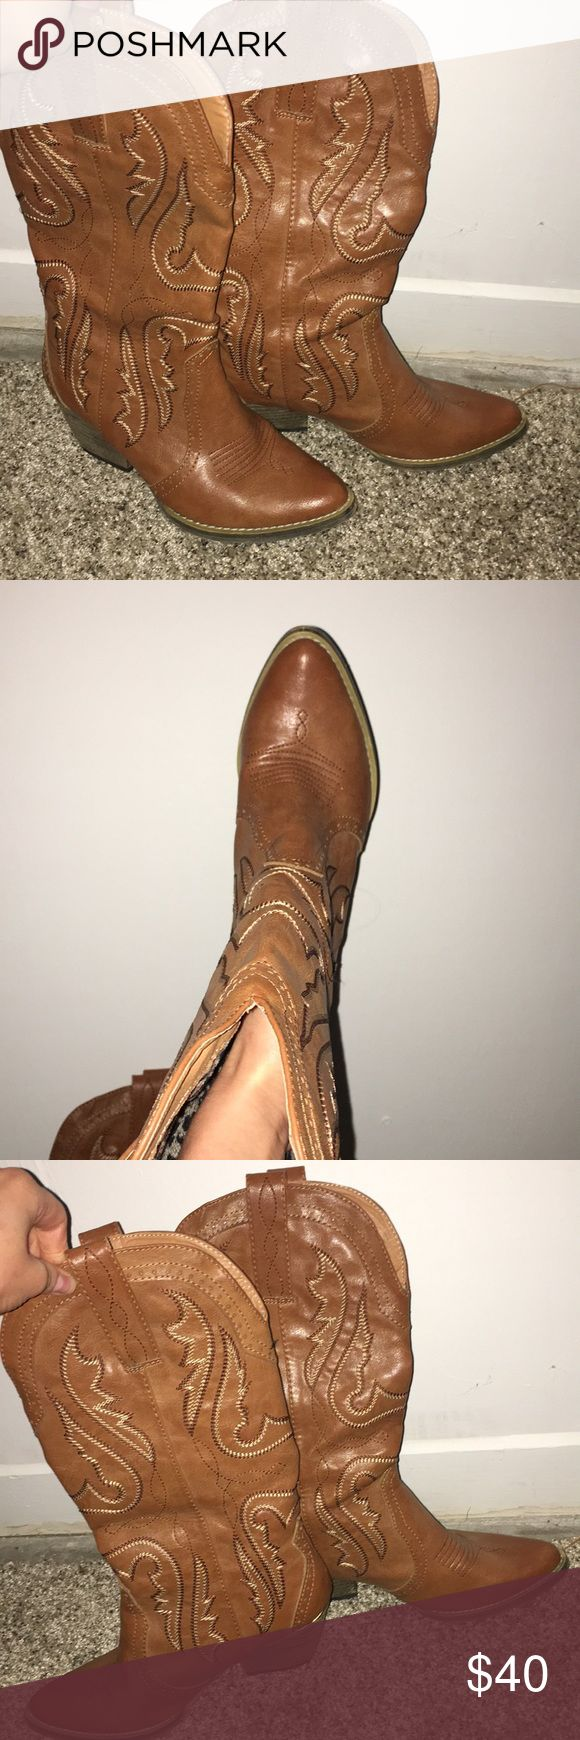 Very Volatile brand cowboy boots. Tan, leather cowboy boots. Only worn 4 times. In great condition Very Volatile Shoes Ankle Boots & Booties